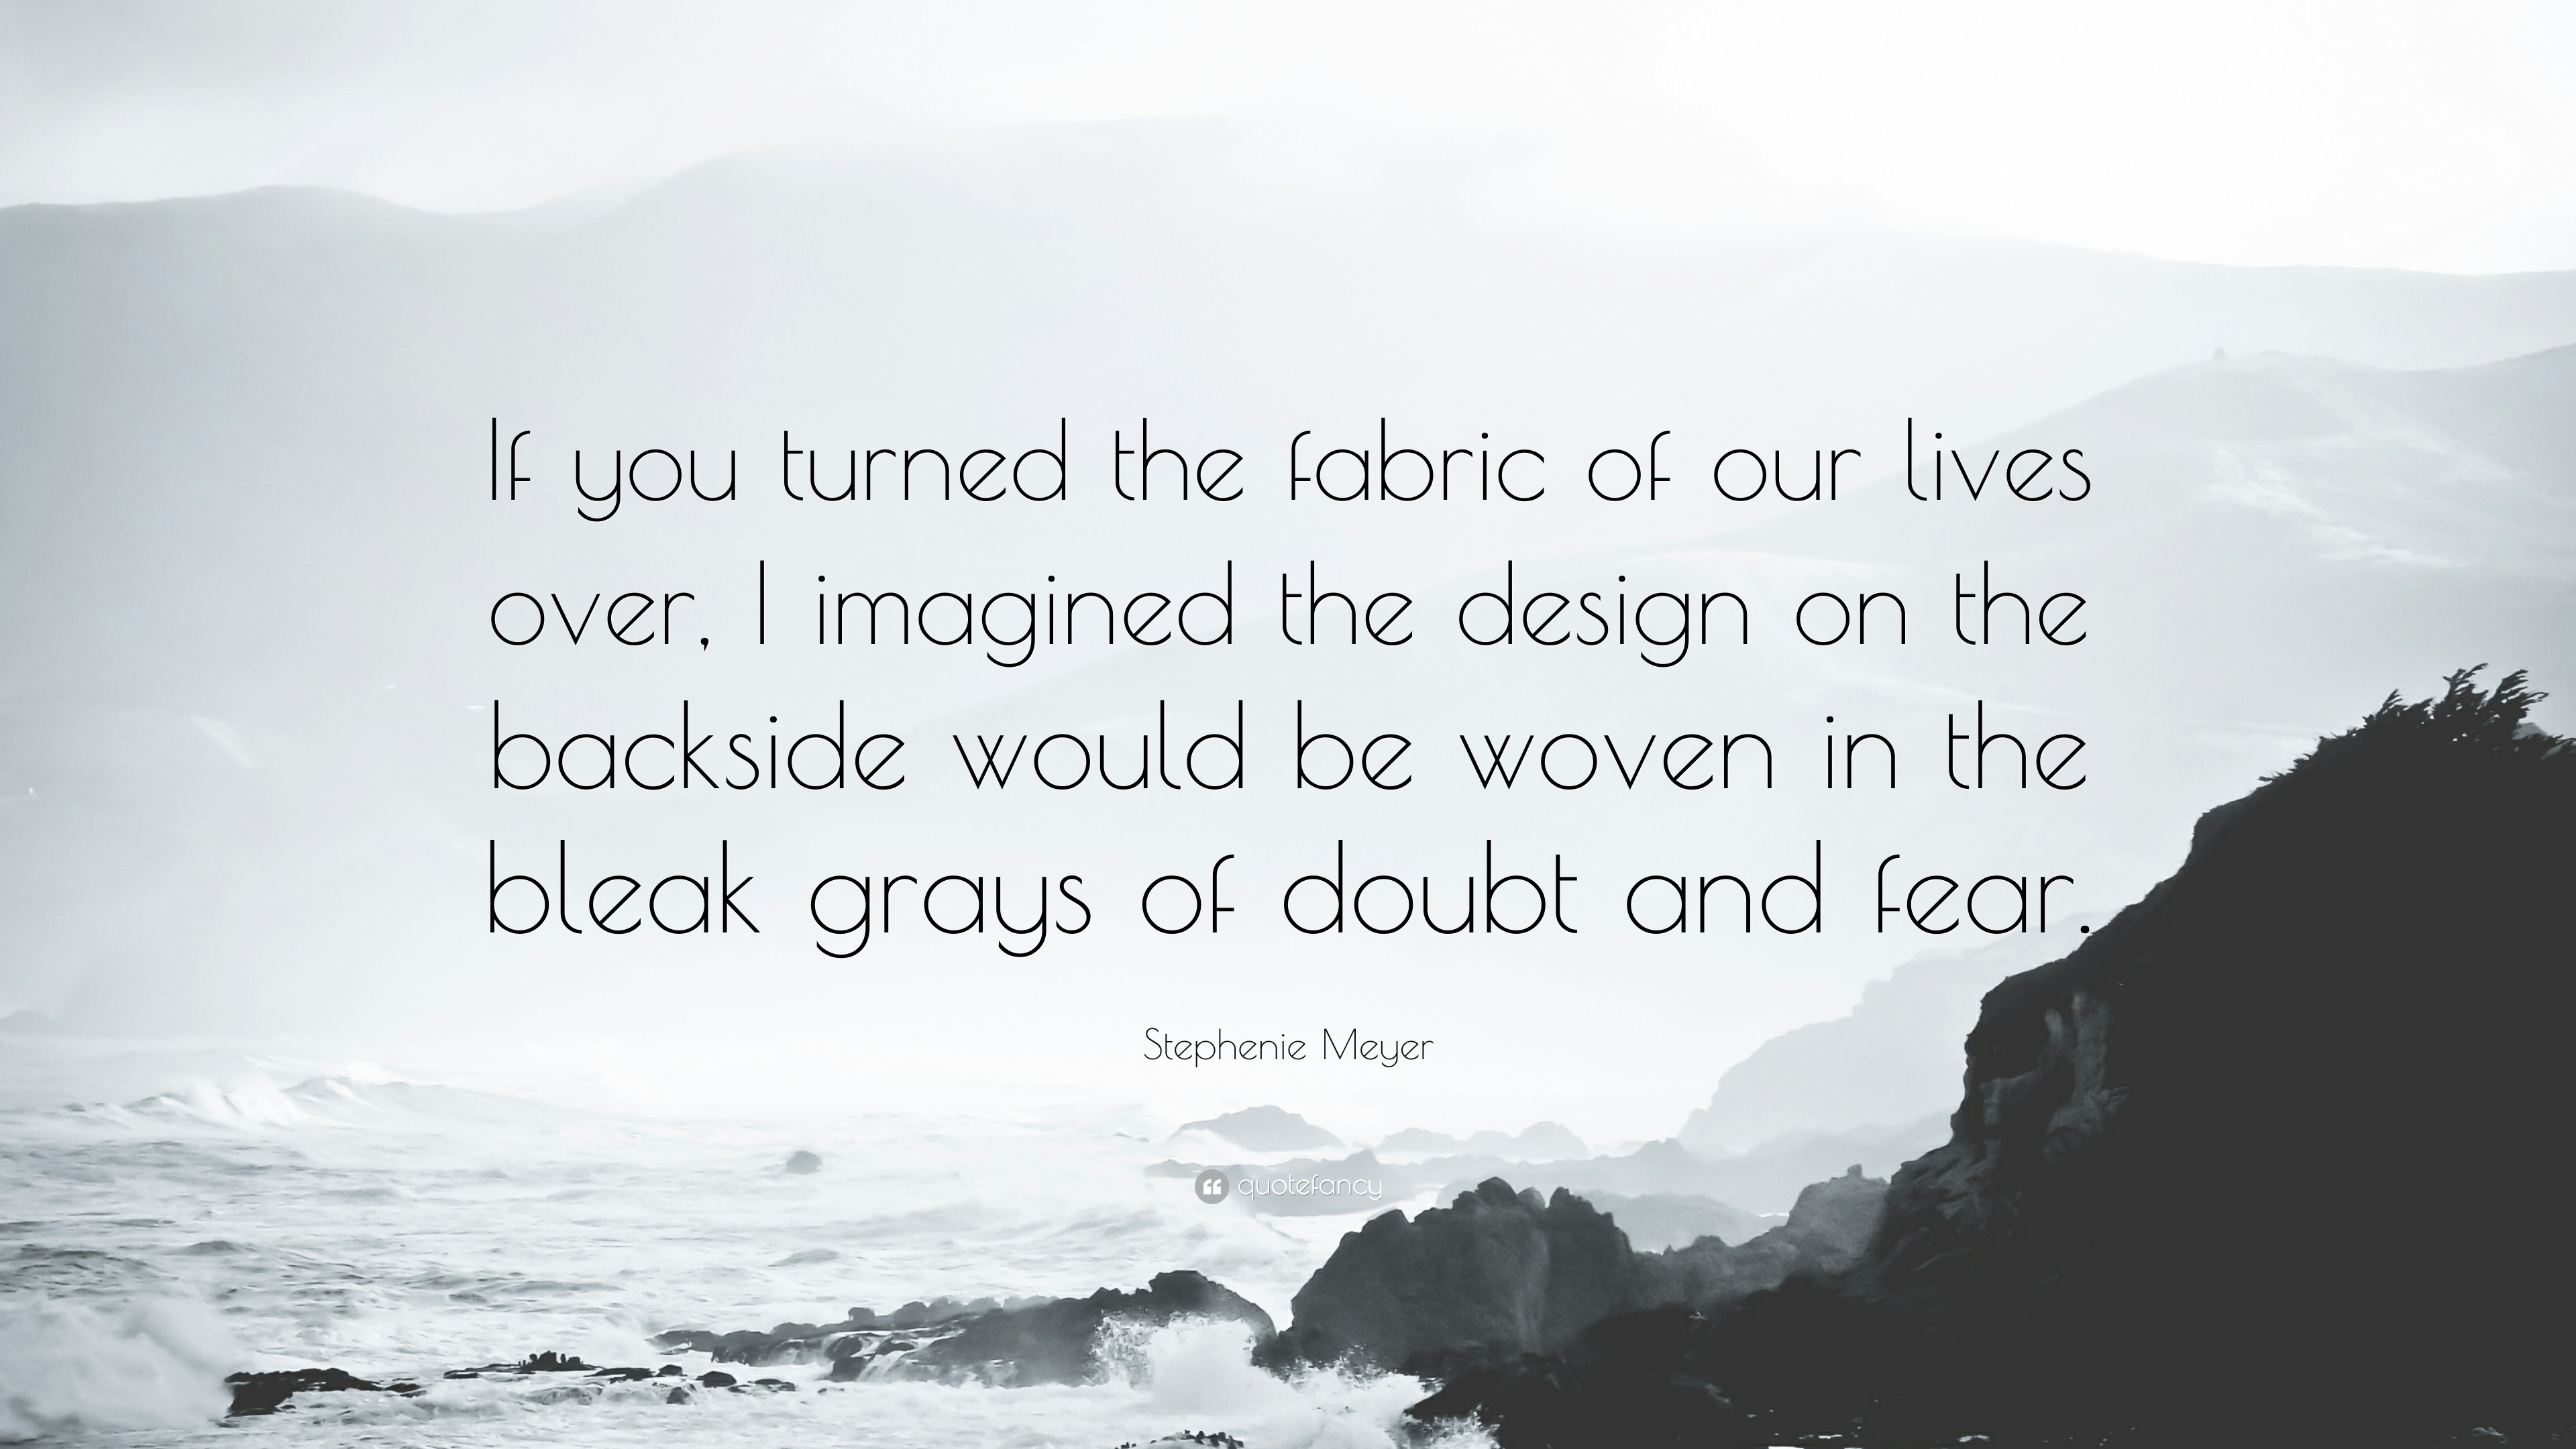 fabric of our lives